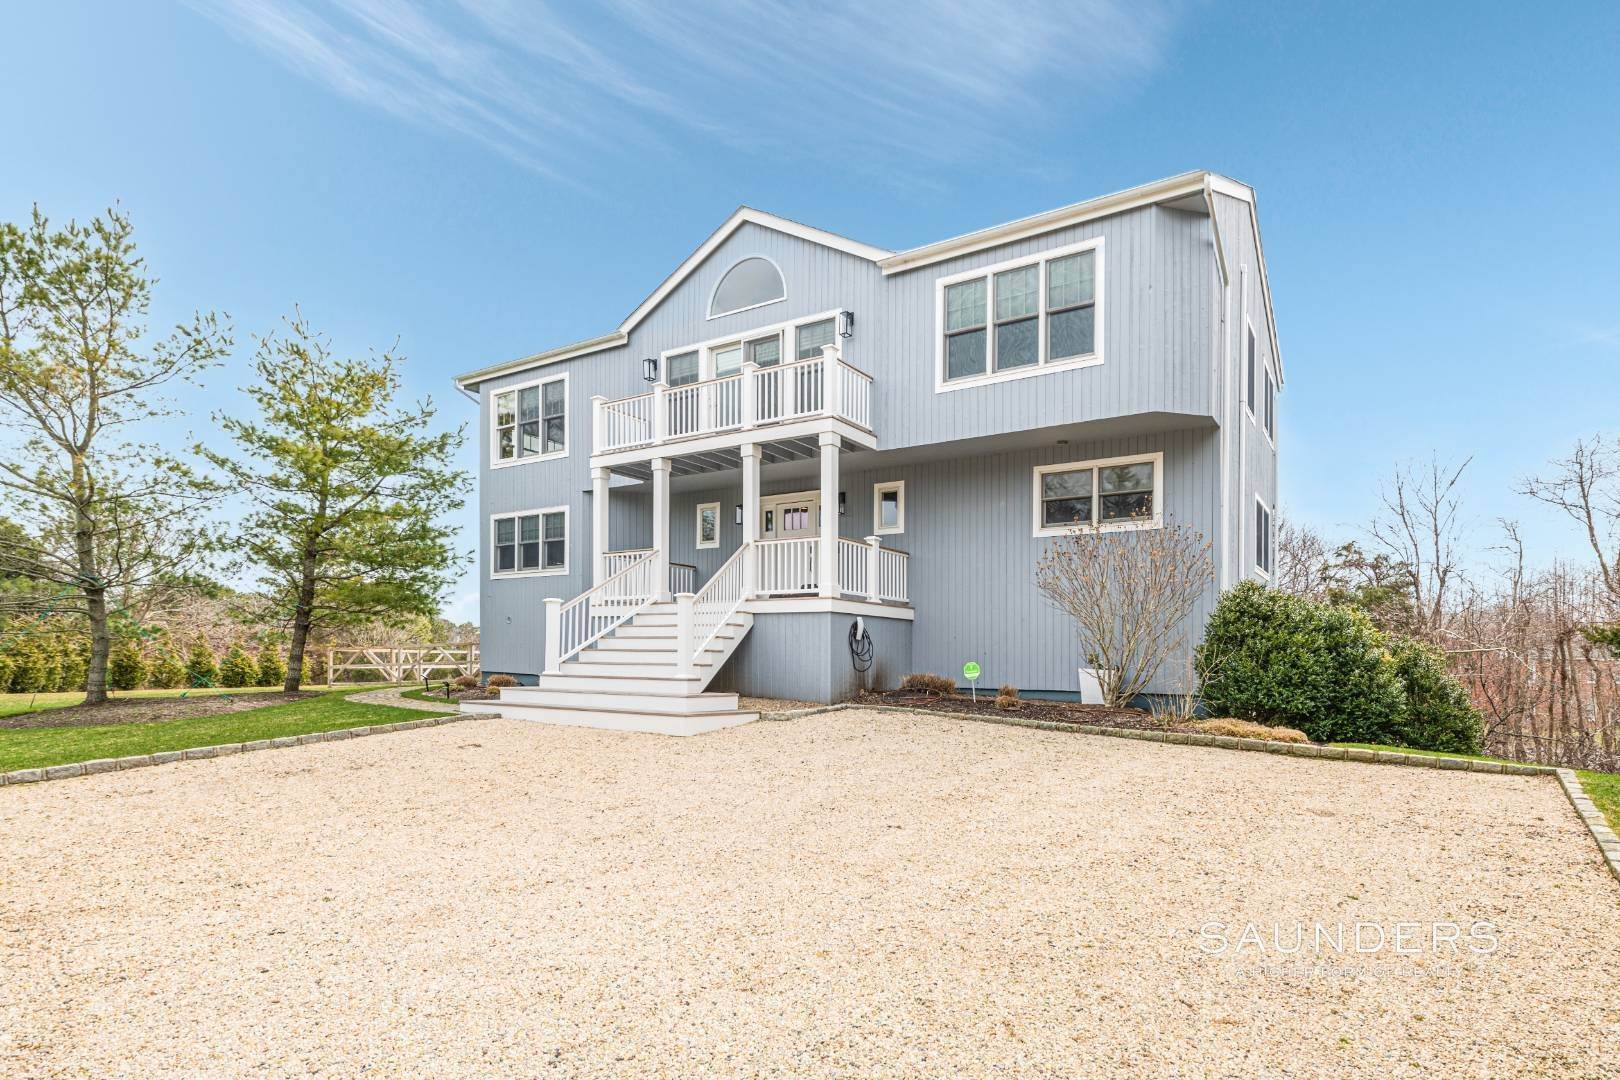 Single Family Homes for Sale at Beautiful Southampton Renovation With Pool And Outdoor Kitchen 80 Blackwatch Court, Southampton, Southampton Town, NY 11968